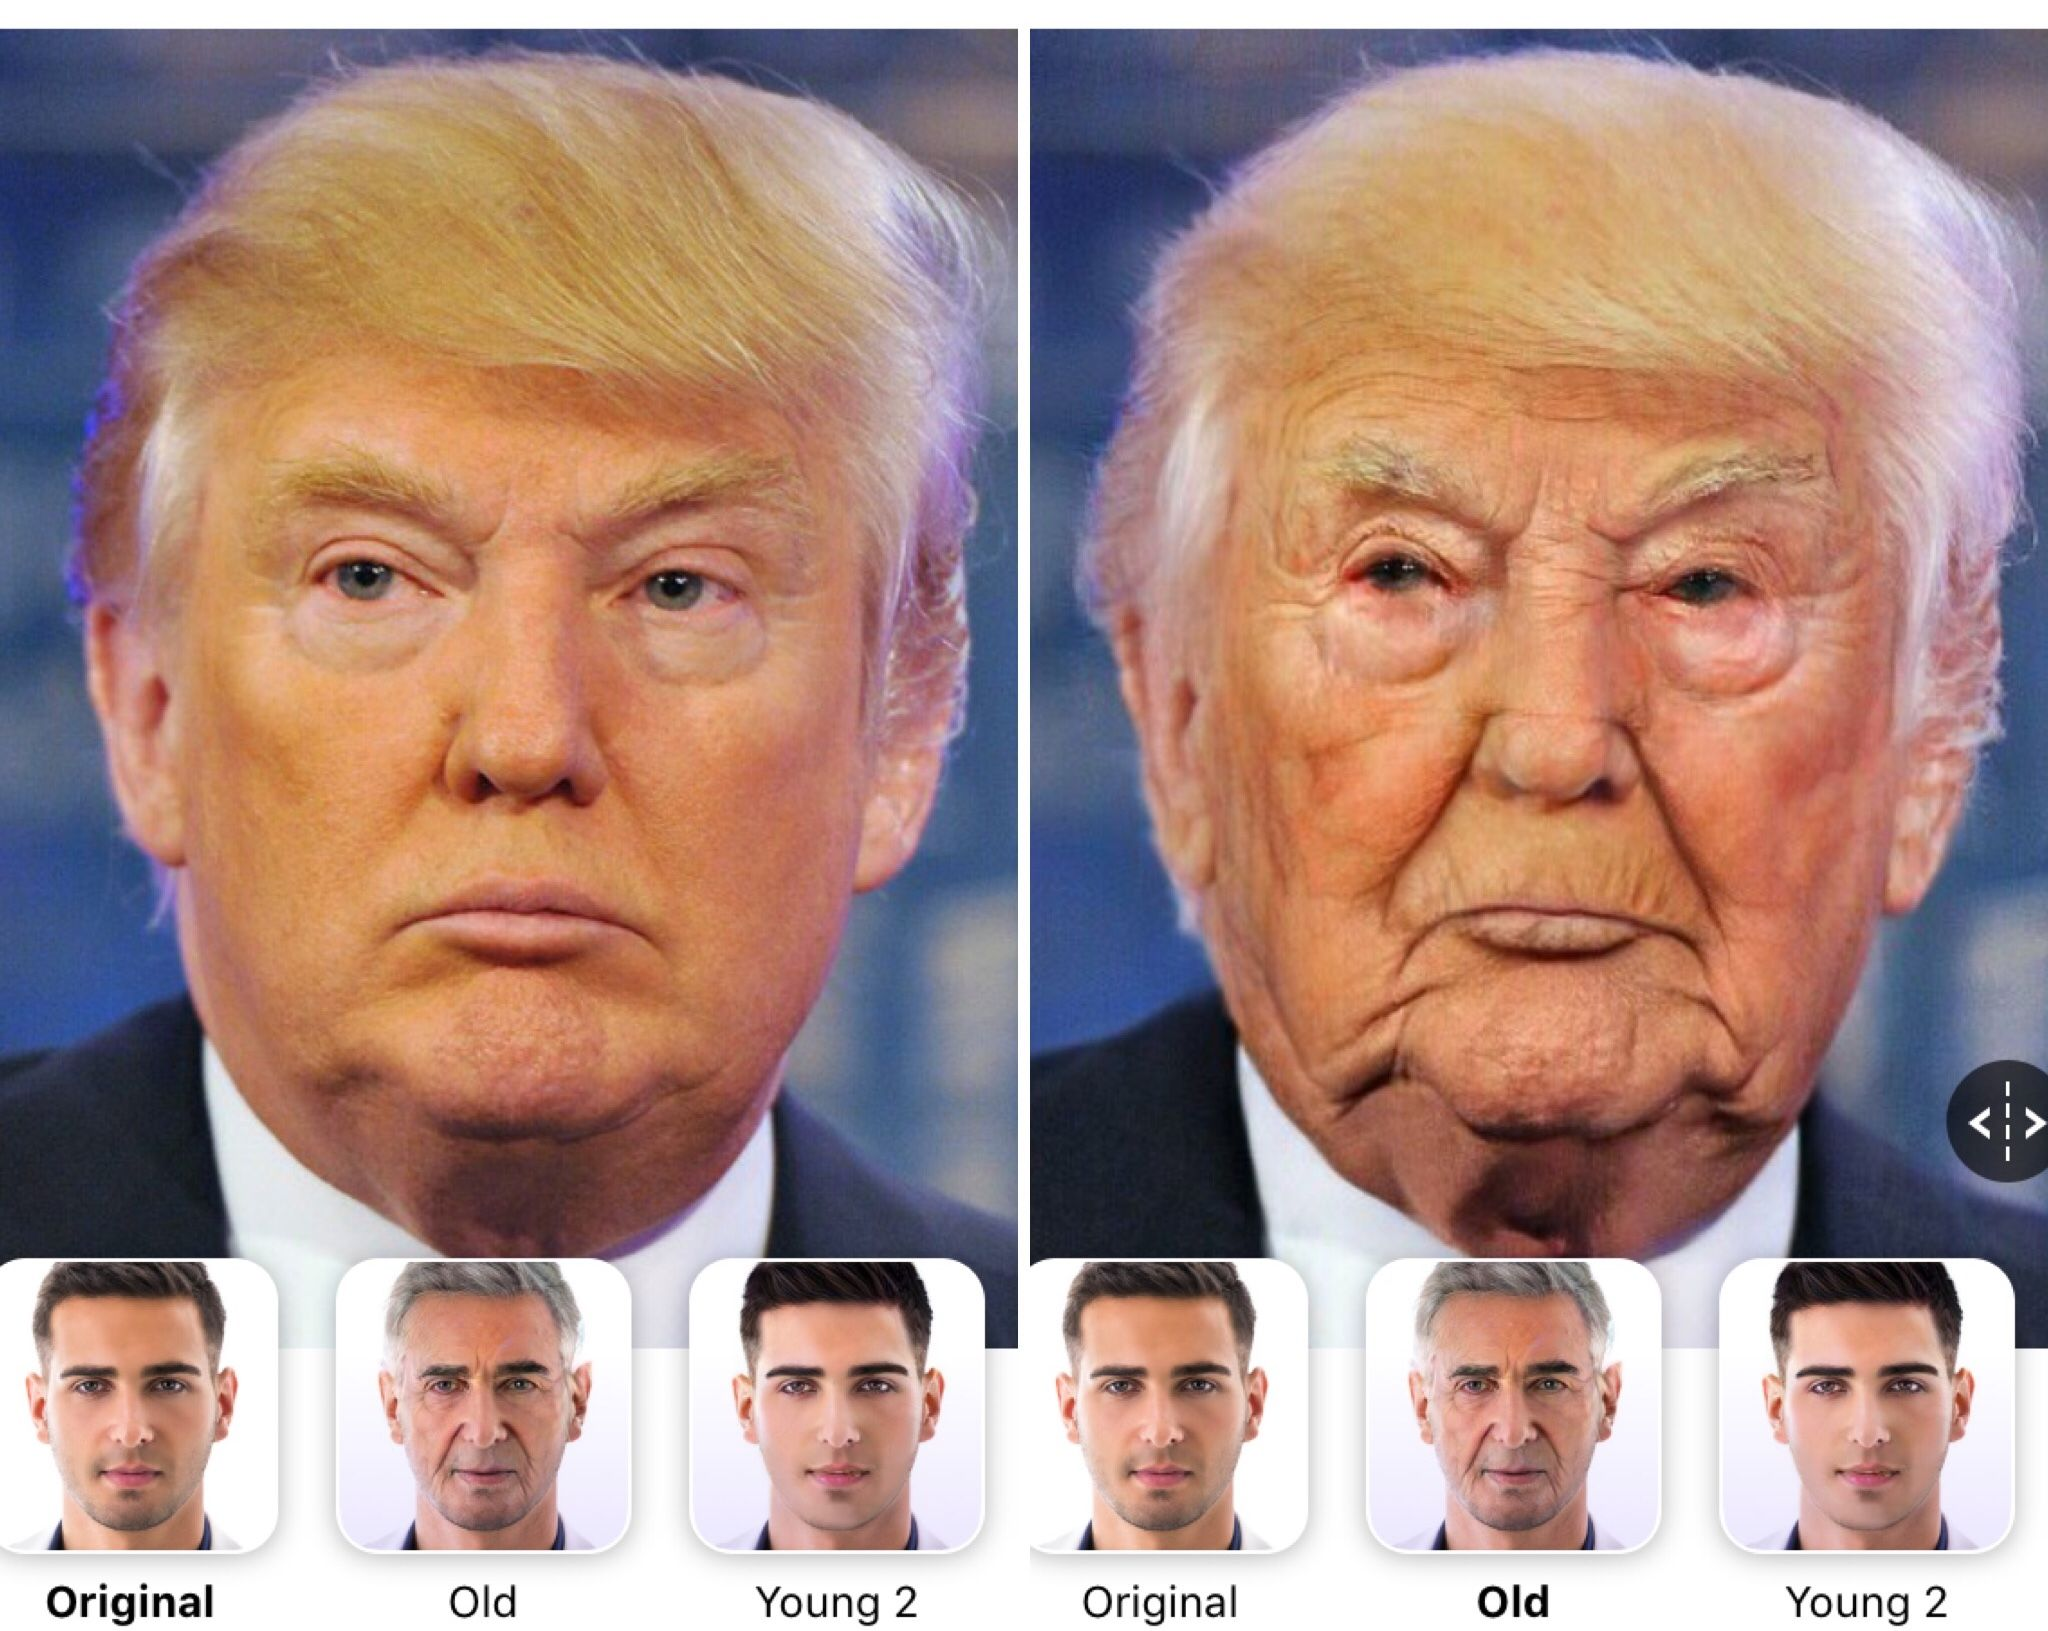 Image may contain: ageing filter, Donald Trump, FaceApp, app, older, filter, younger, old man, funniest, best, example, old woman, celebrities, social media, age changing app, make yourself look older app, free, app store, challenge, Frown, Head, Face, Human, Person